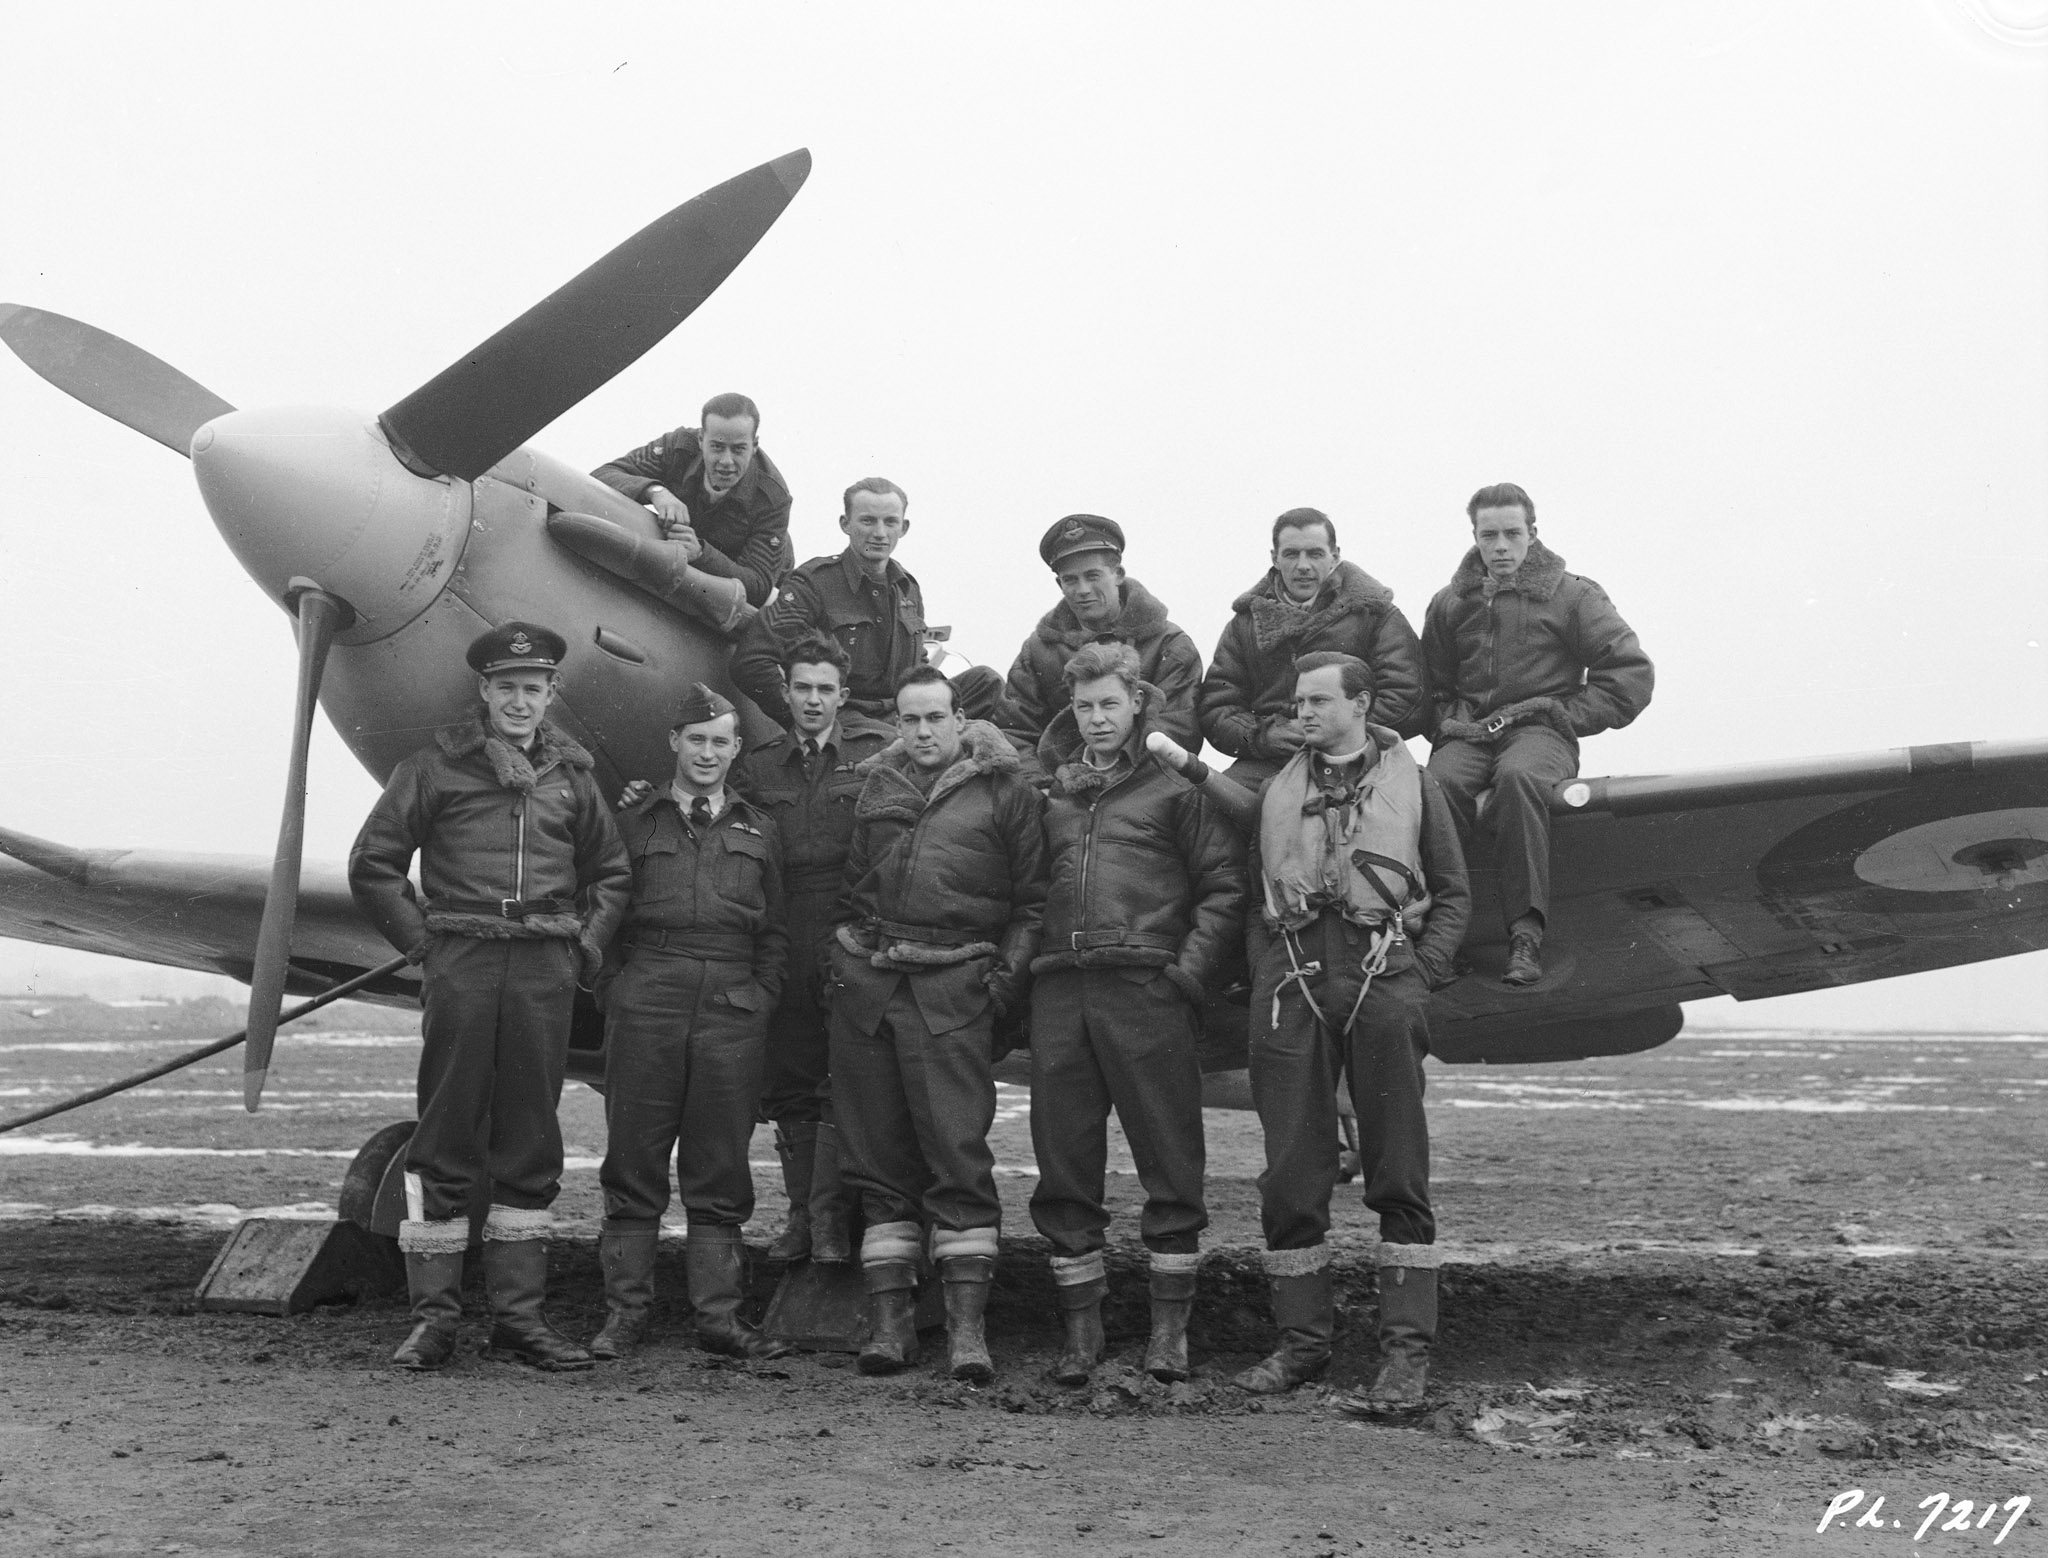 In RCAF squadrons based in Great Britain, most Spitfire aircrew were products of the British Commonwealth Air Training Plan in Canada. This photo, taken February 12, 1942, shows eleven members of 403 Squadron. Front, left: Pilot Officer J.N. Cawsey, Calgary, Alberta; Pilot Officer J.T. Parr, Barrie, Ontario; Flight Sergeant E.A. Crist, Wallaceburg, Ontario; Sergeant D.D. Connell, Hamilton, Ontario; Sergeant J.H. Oliver, Toronto, Ontario; and Sergeant H.R. Olmsted, Ottawa, Ontario. Back, left: Flight Sergeant J.B. Rainville, St. Johns, Quebec; Flight Sergeant A.H. McDonald, Fleming, Saskatchewan; Pilot Officer D.S. Hurst, Winnipeg, Manitoba; Flight Sergeant F.H. Belcher, Roblin, Manitoba; and Flight Sergeant G.A.J. Ryckman, London, Ontario. PHOTO: DND Archives,